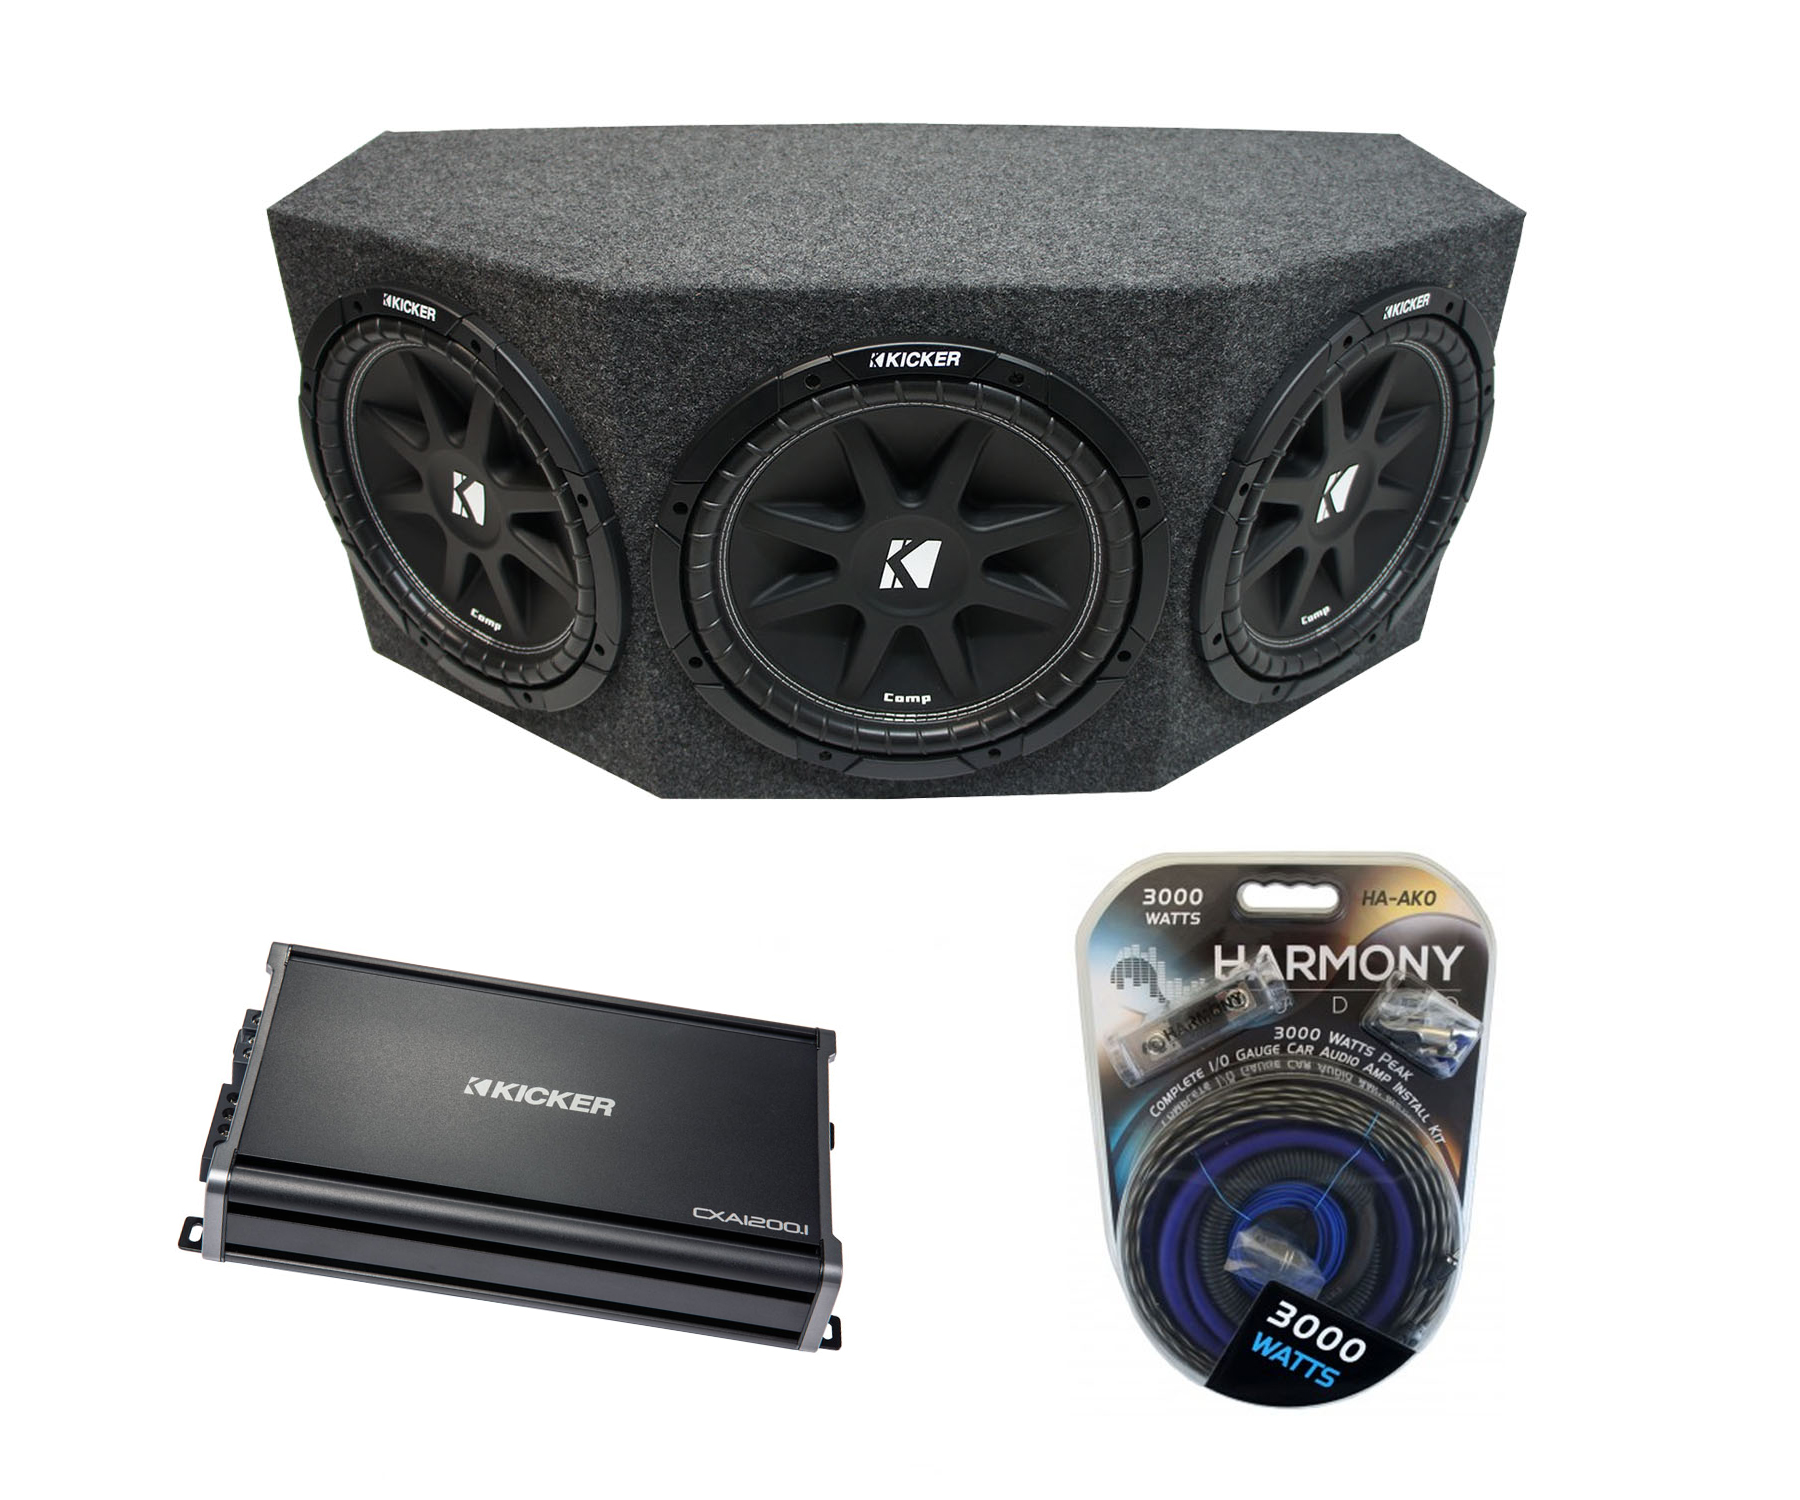 "Kicker Comp C12 Triple 12"" Subwoofer Loaded 1800 Watt Sub Box Enclosure & CX1200.1 Amp"